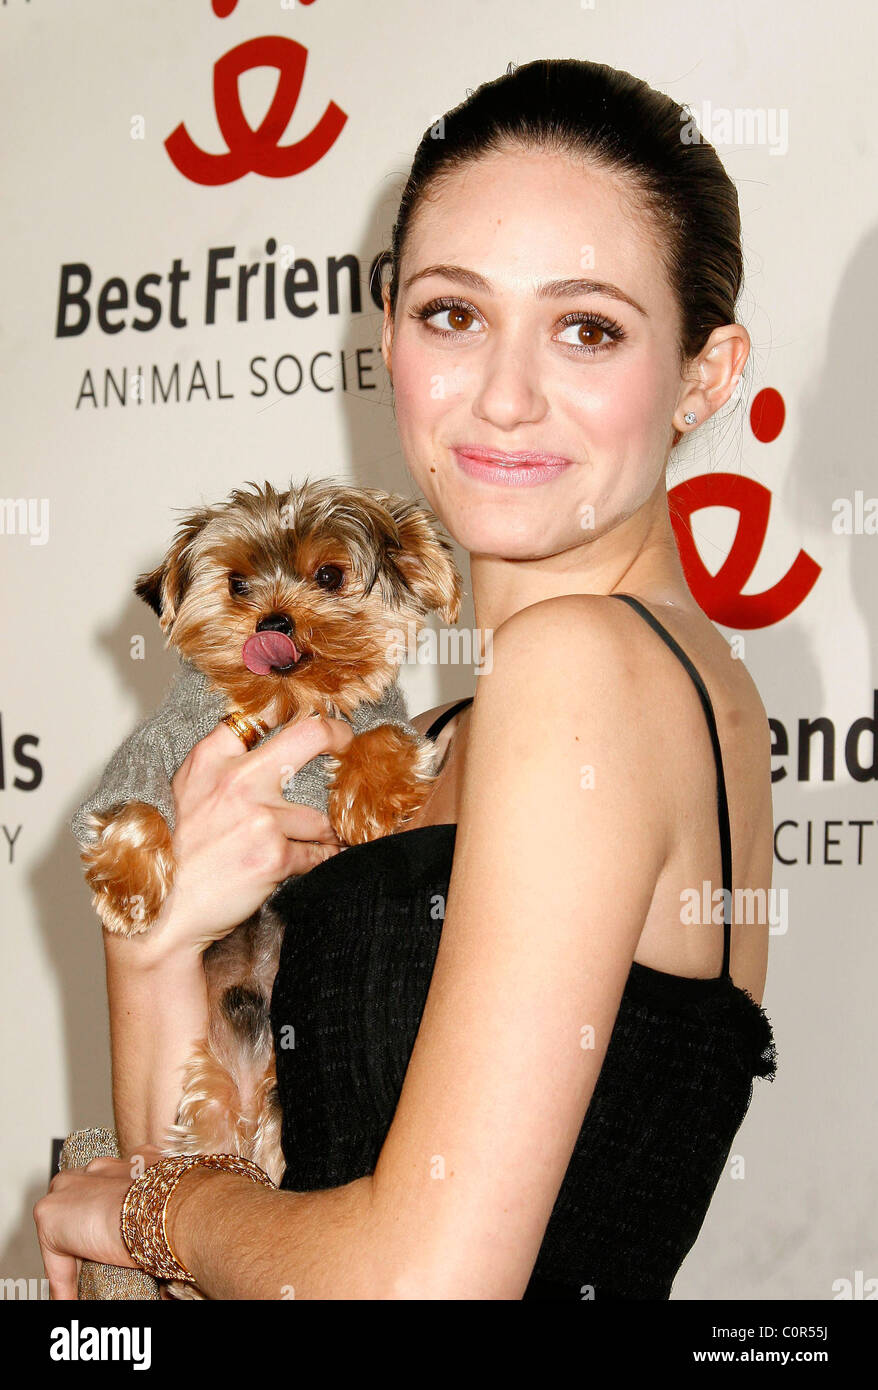 Emmy Rossum 15th Annual Lint Roller Party presented by the Best Friends Animal Society Hollywood, California - 13.11.08 - Stock Image